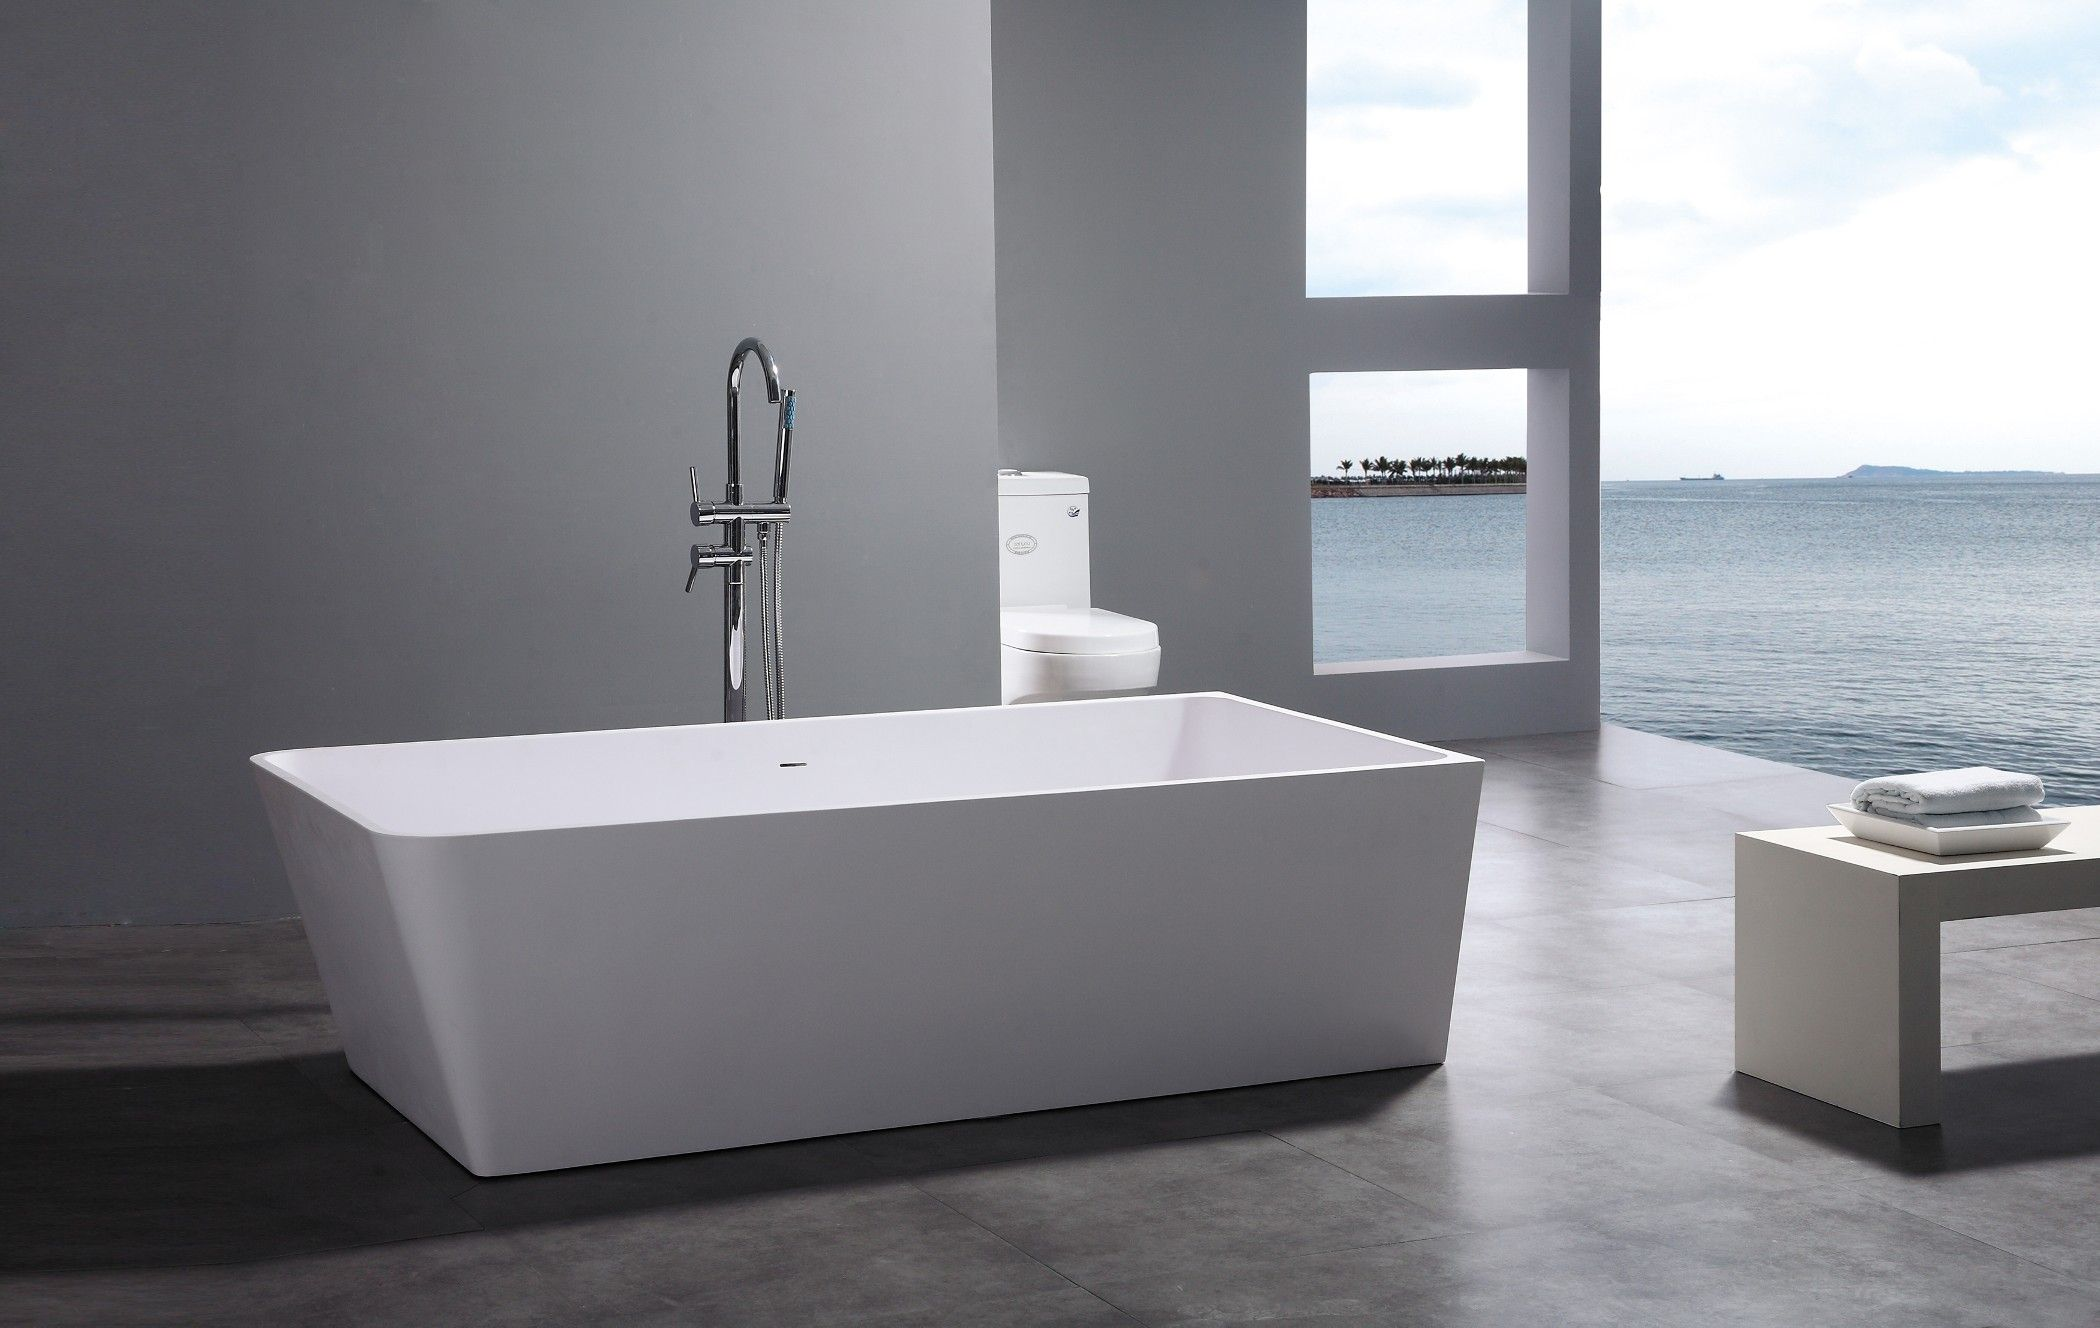 Contemporary Bathtub Design for Modern Bathroom Looks | From the ...